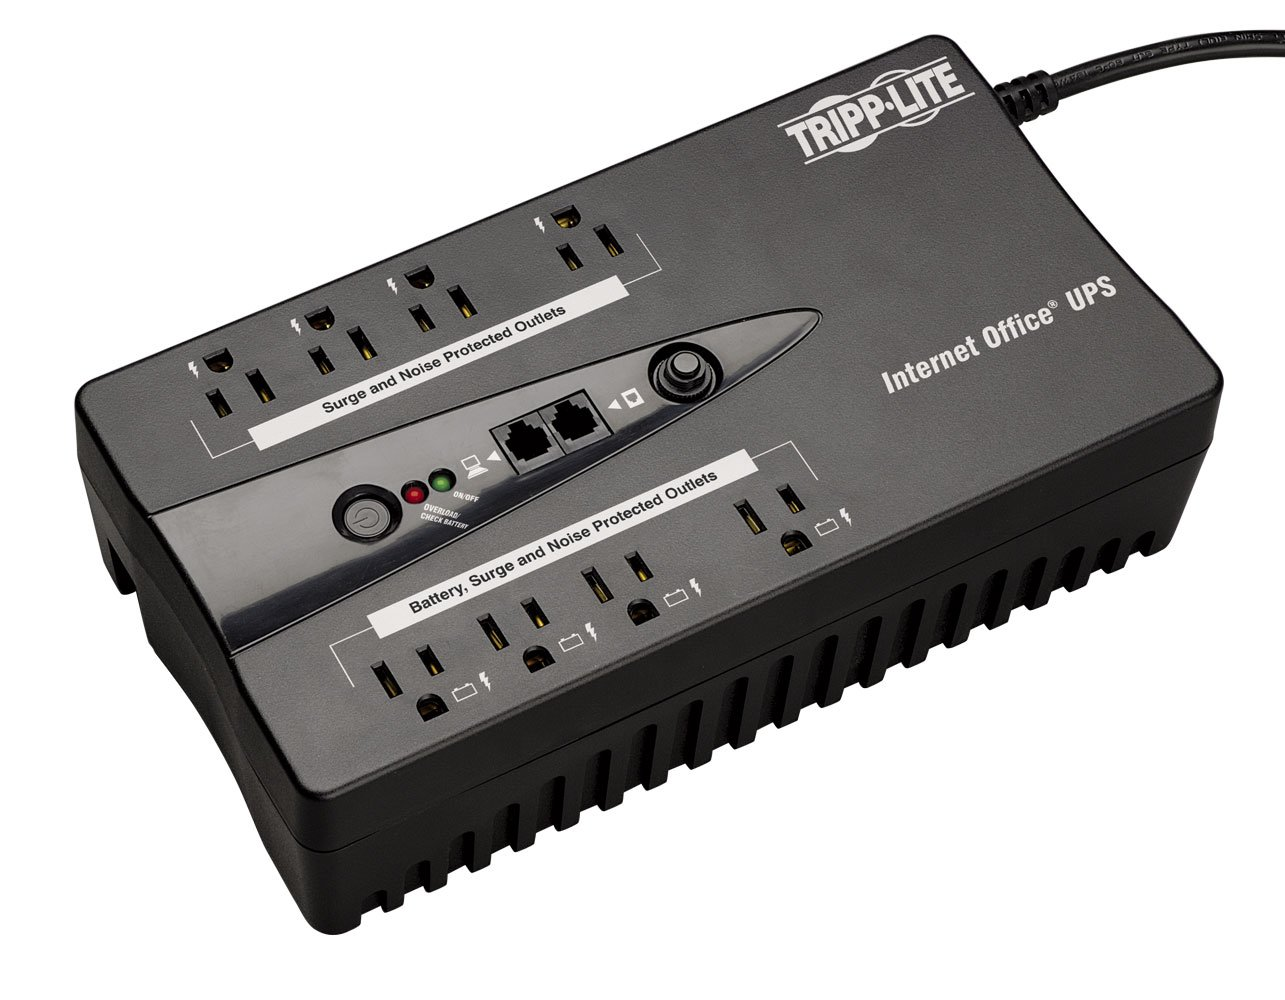 Tripp Lite INTERNET550SER 550VA 300W UPS Desktop Battery Back Up Compact 120V DB9 RJ11 PC, 8 Outlets